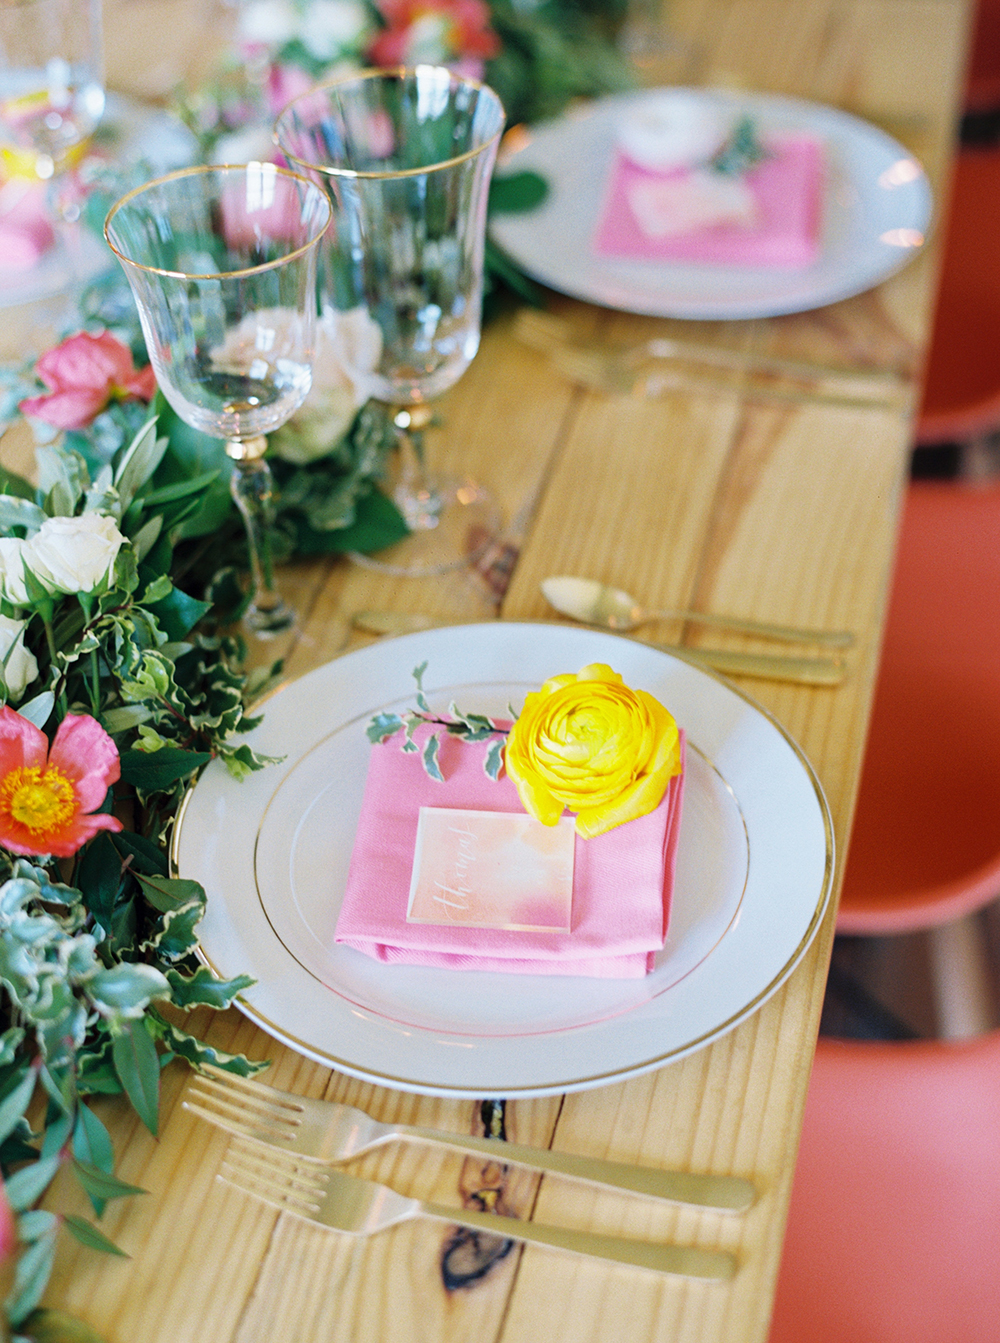 wedding tablescapes - photo by Jessica Gold Photography http://ruffledblog.com/vibrant-summer-wedding-inspiration-with-fun-colors